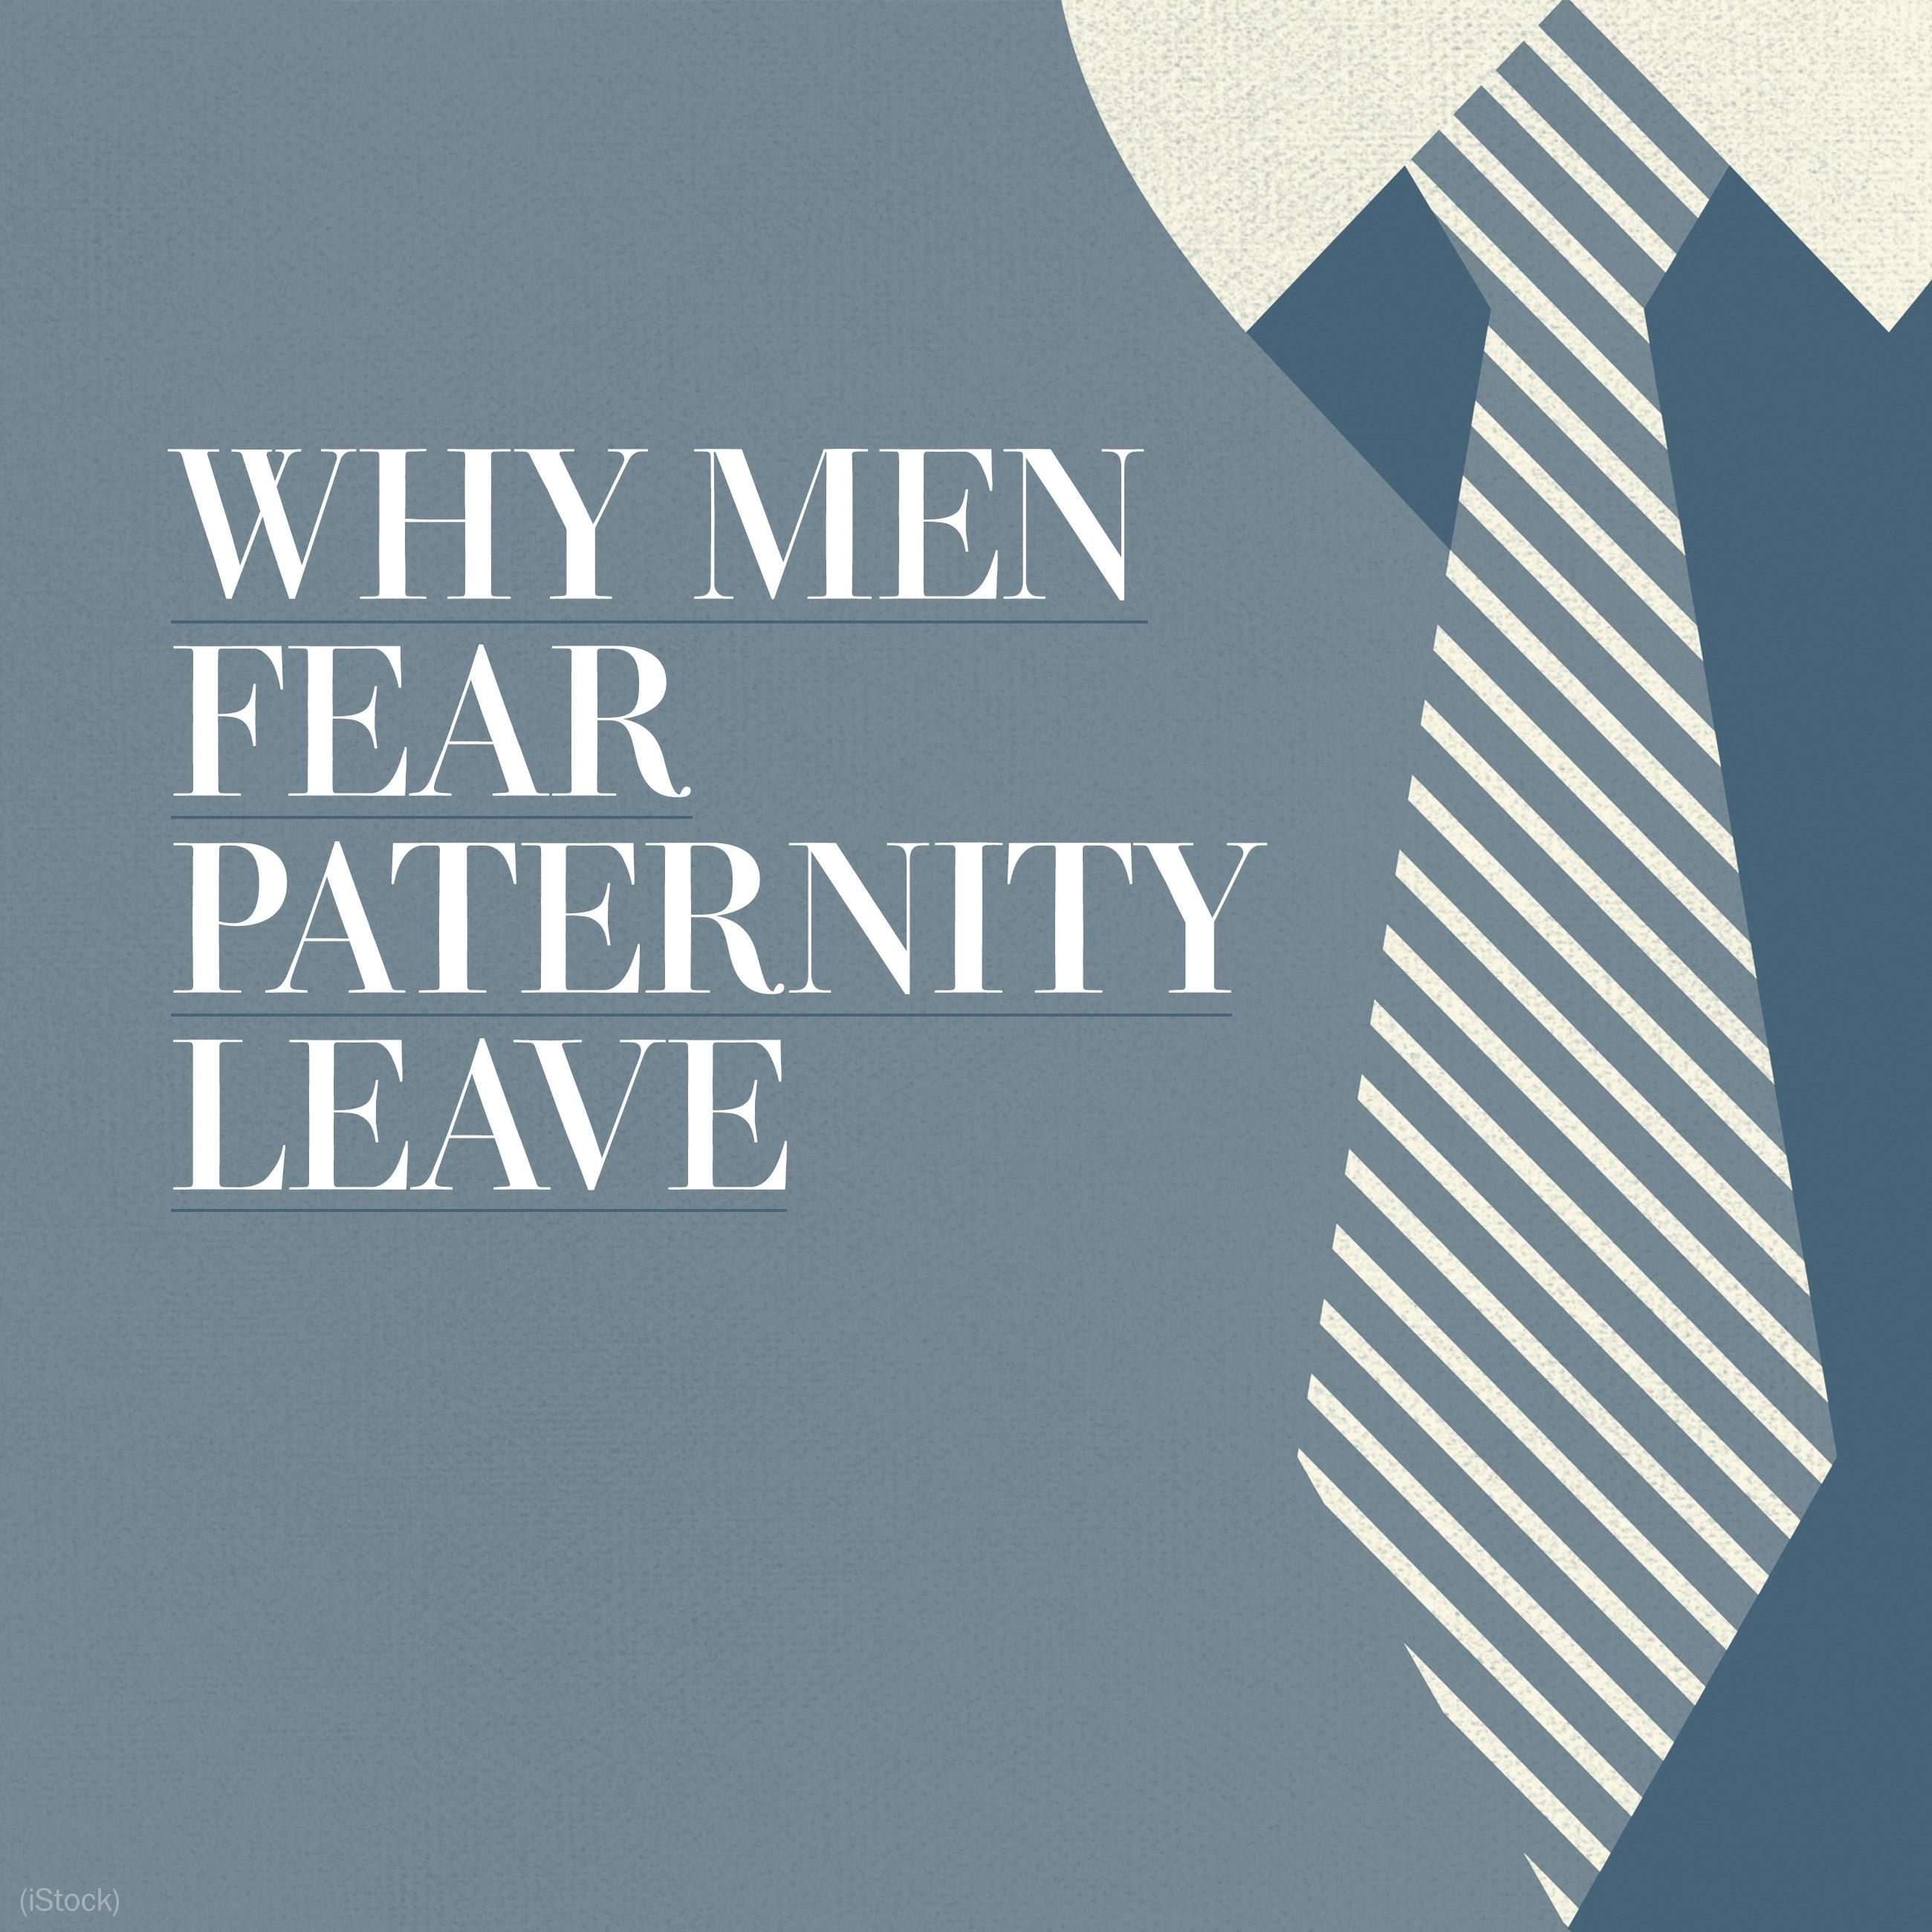 Why men fear paternity leave